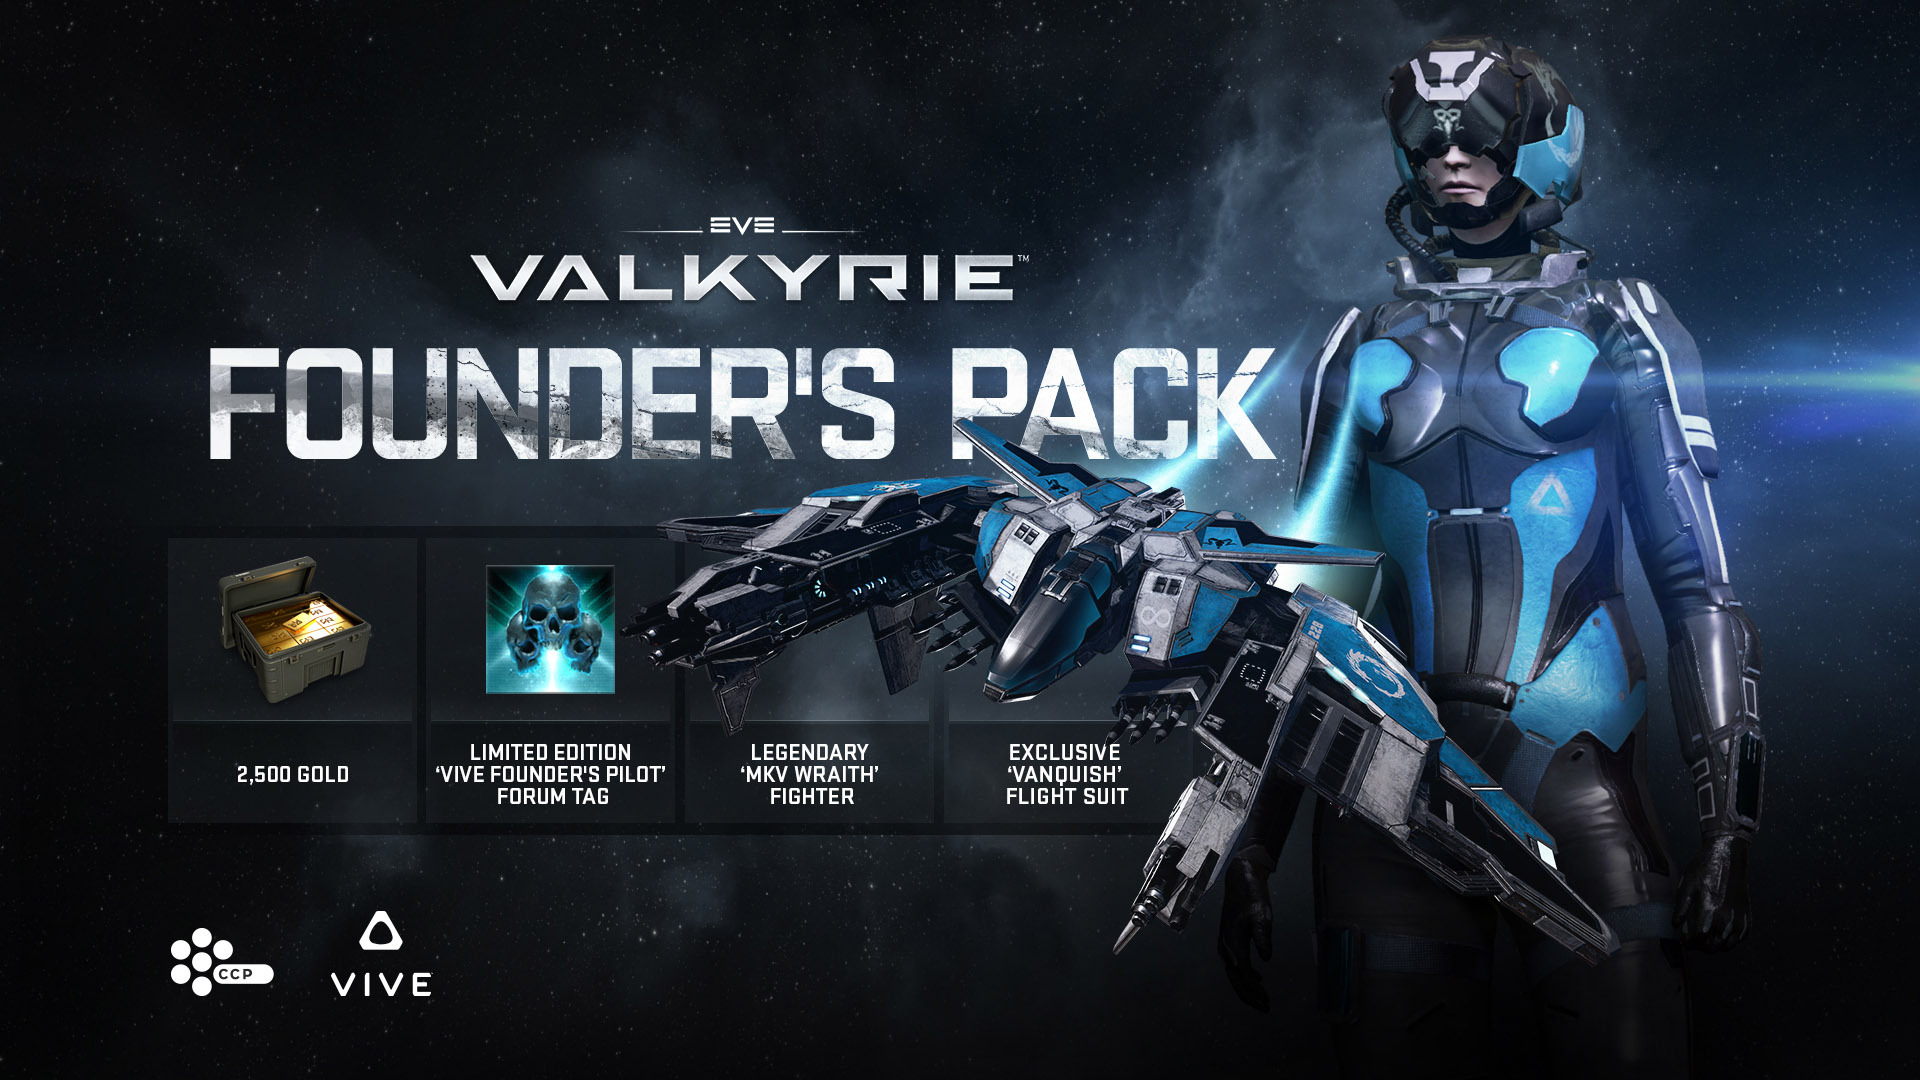 EVE Valkyrie EVE Valkyrie Launches On Steam And HTC Vive